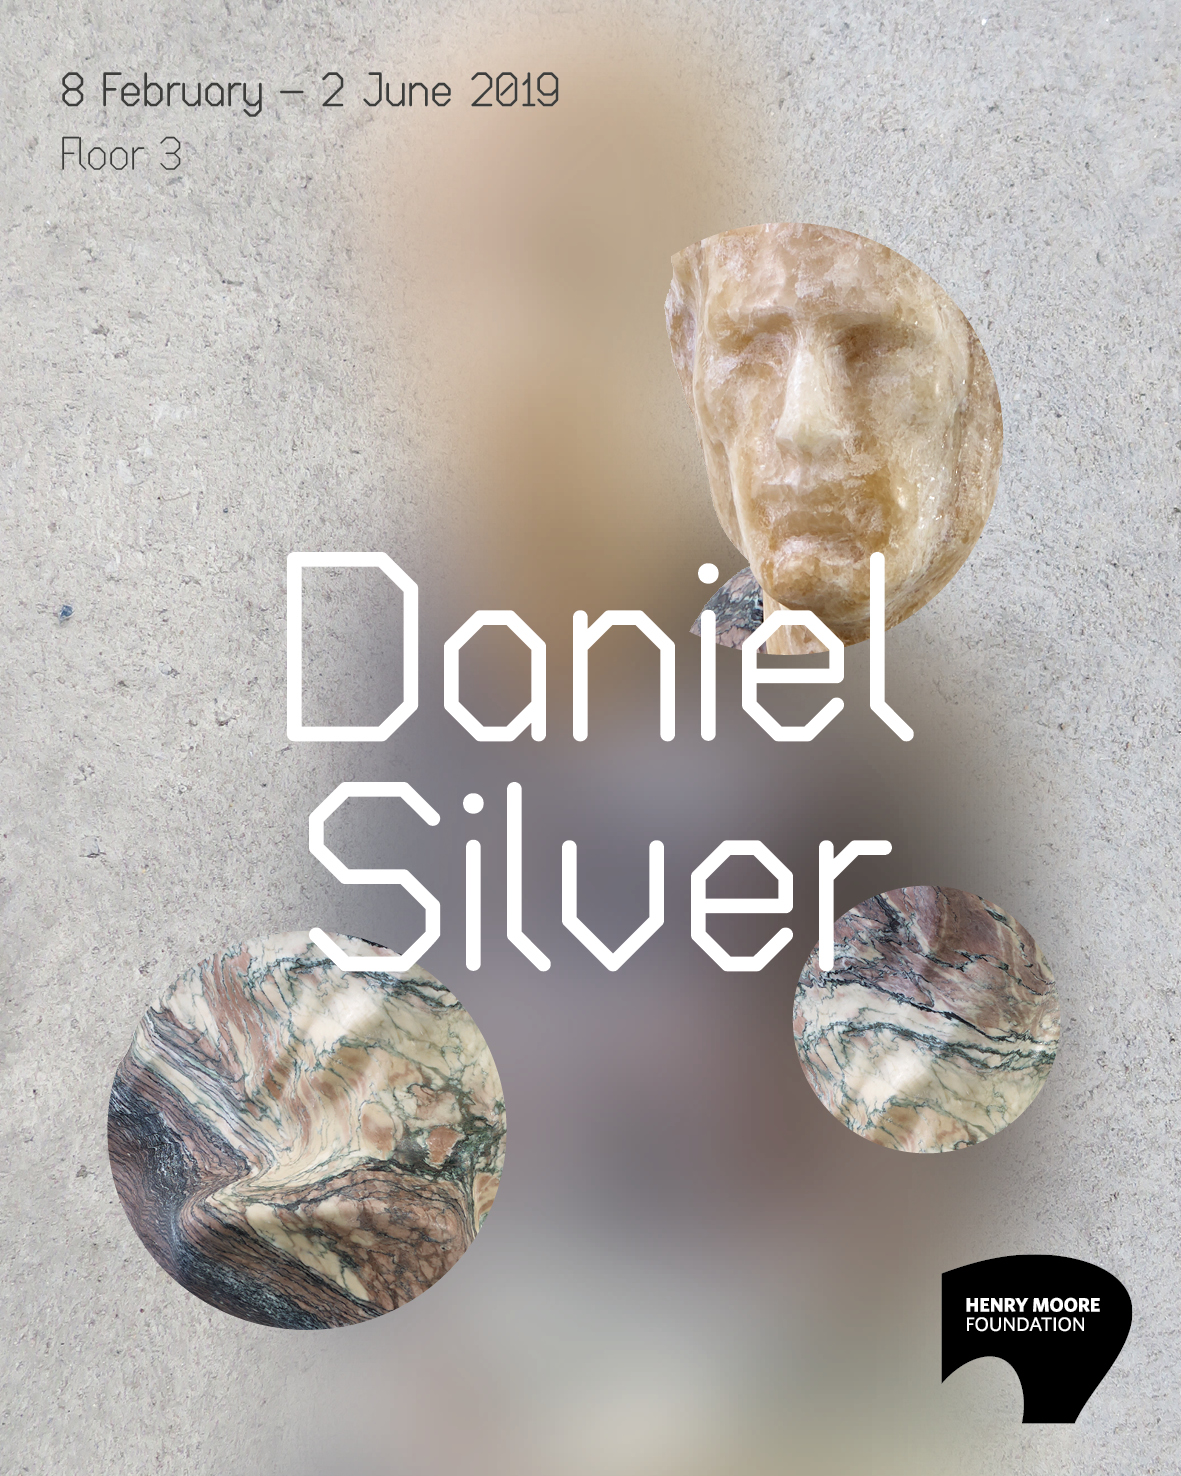 Image: Daniel Silver, Peter, 2018, Courtesy the artist and Frith Street Gallery, London